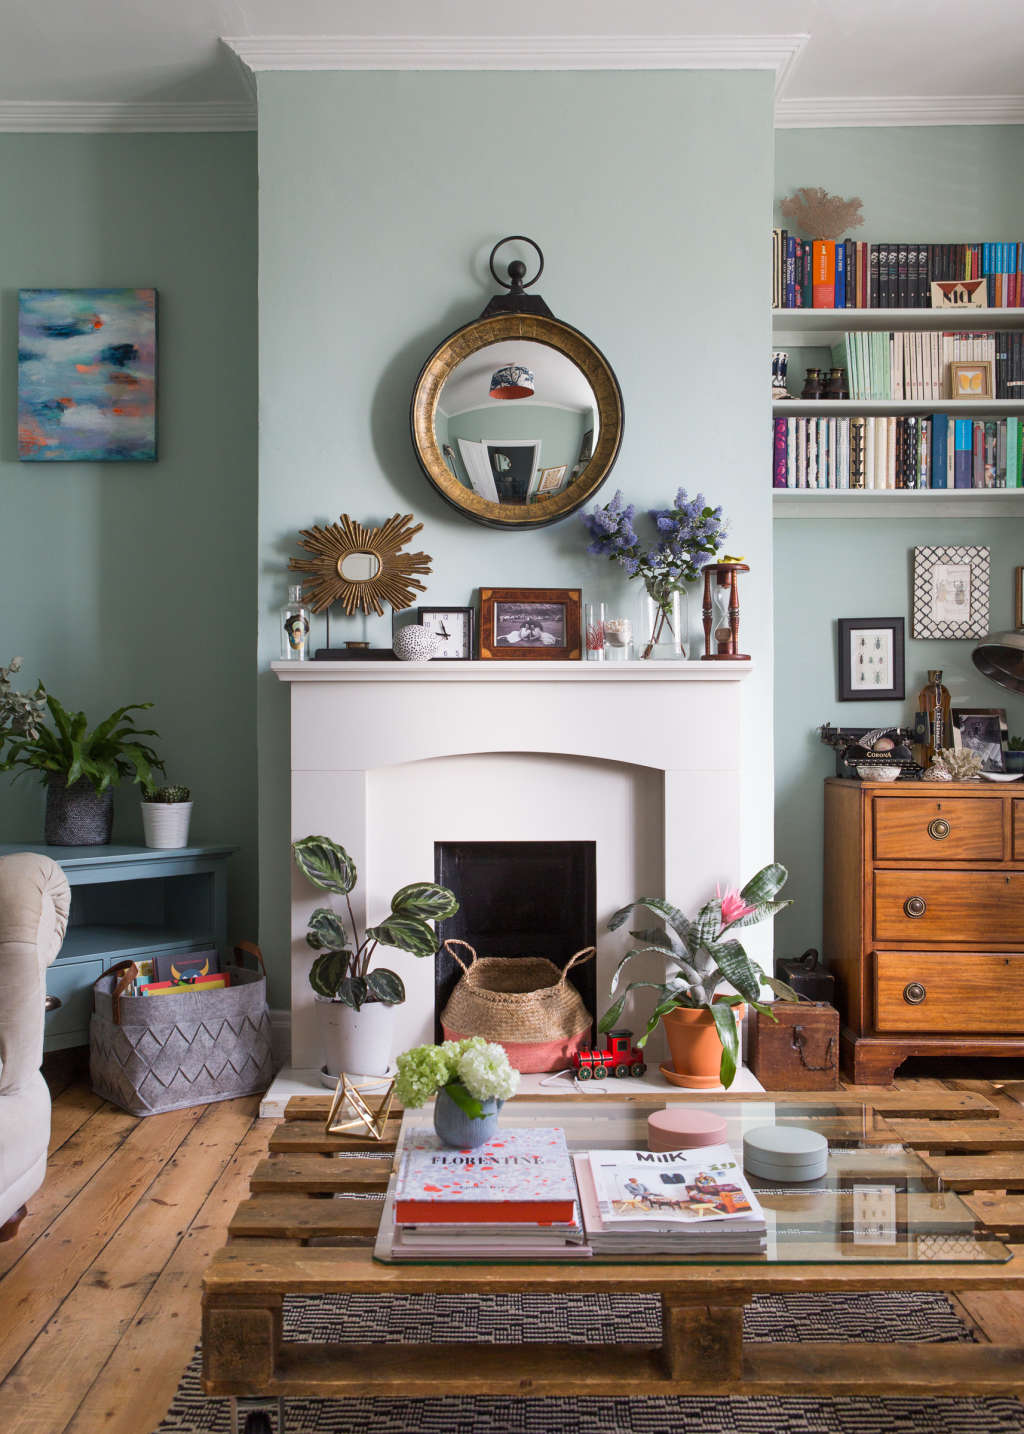 Steal These Styling Secrets from This Chic London Home